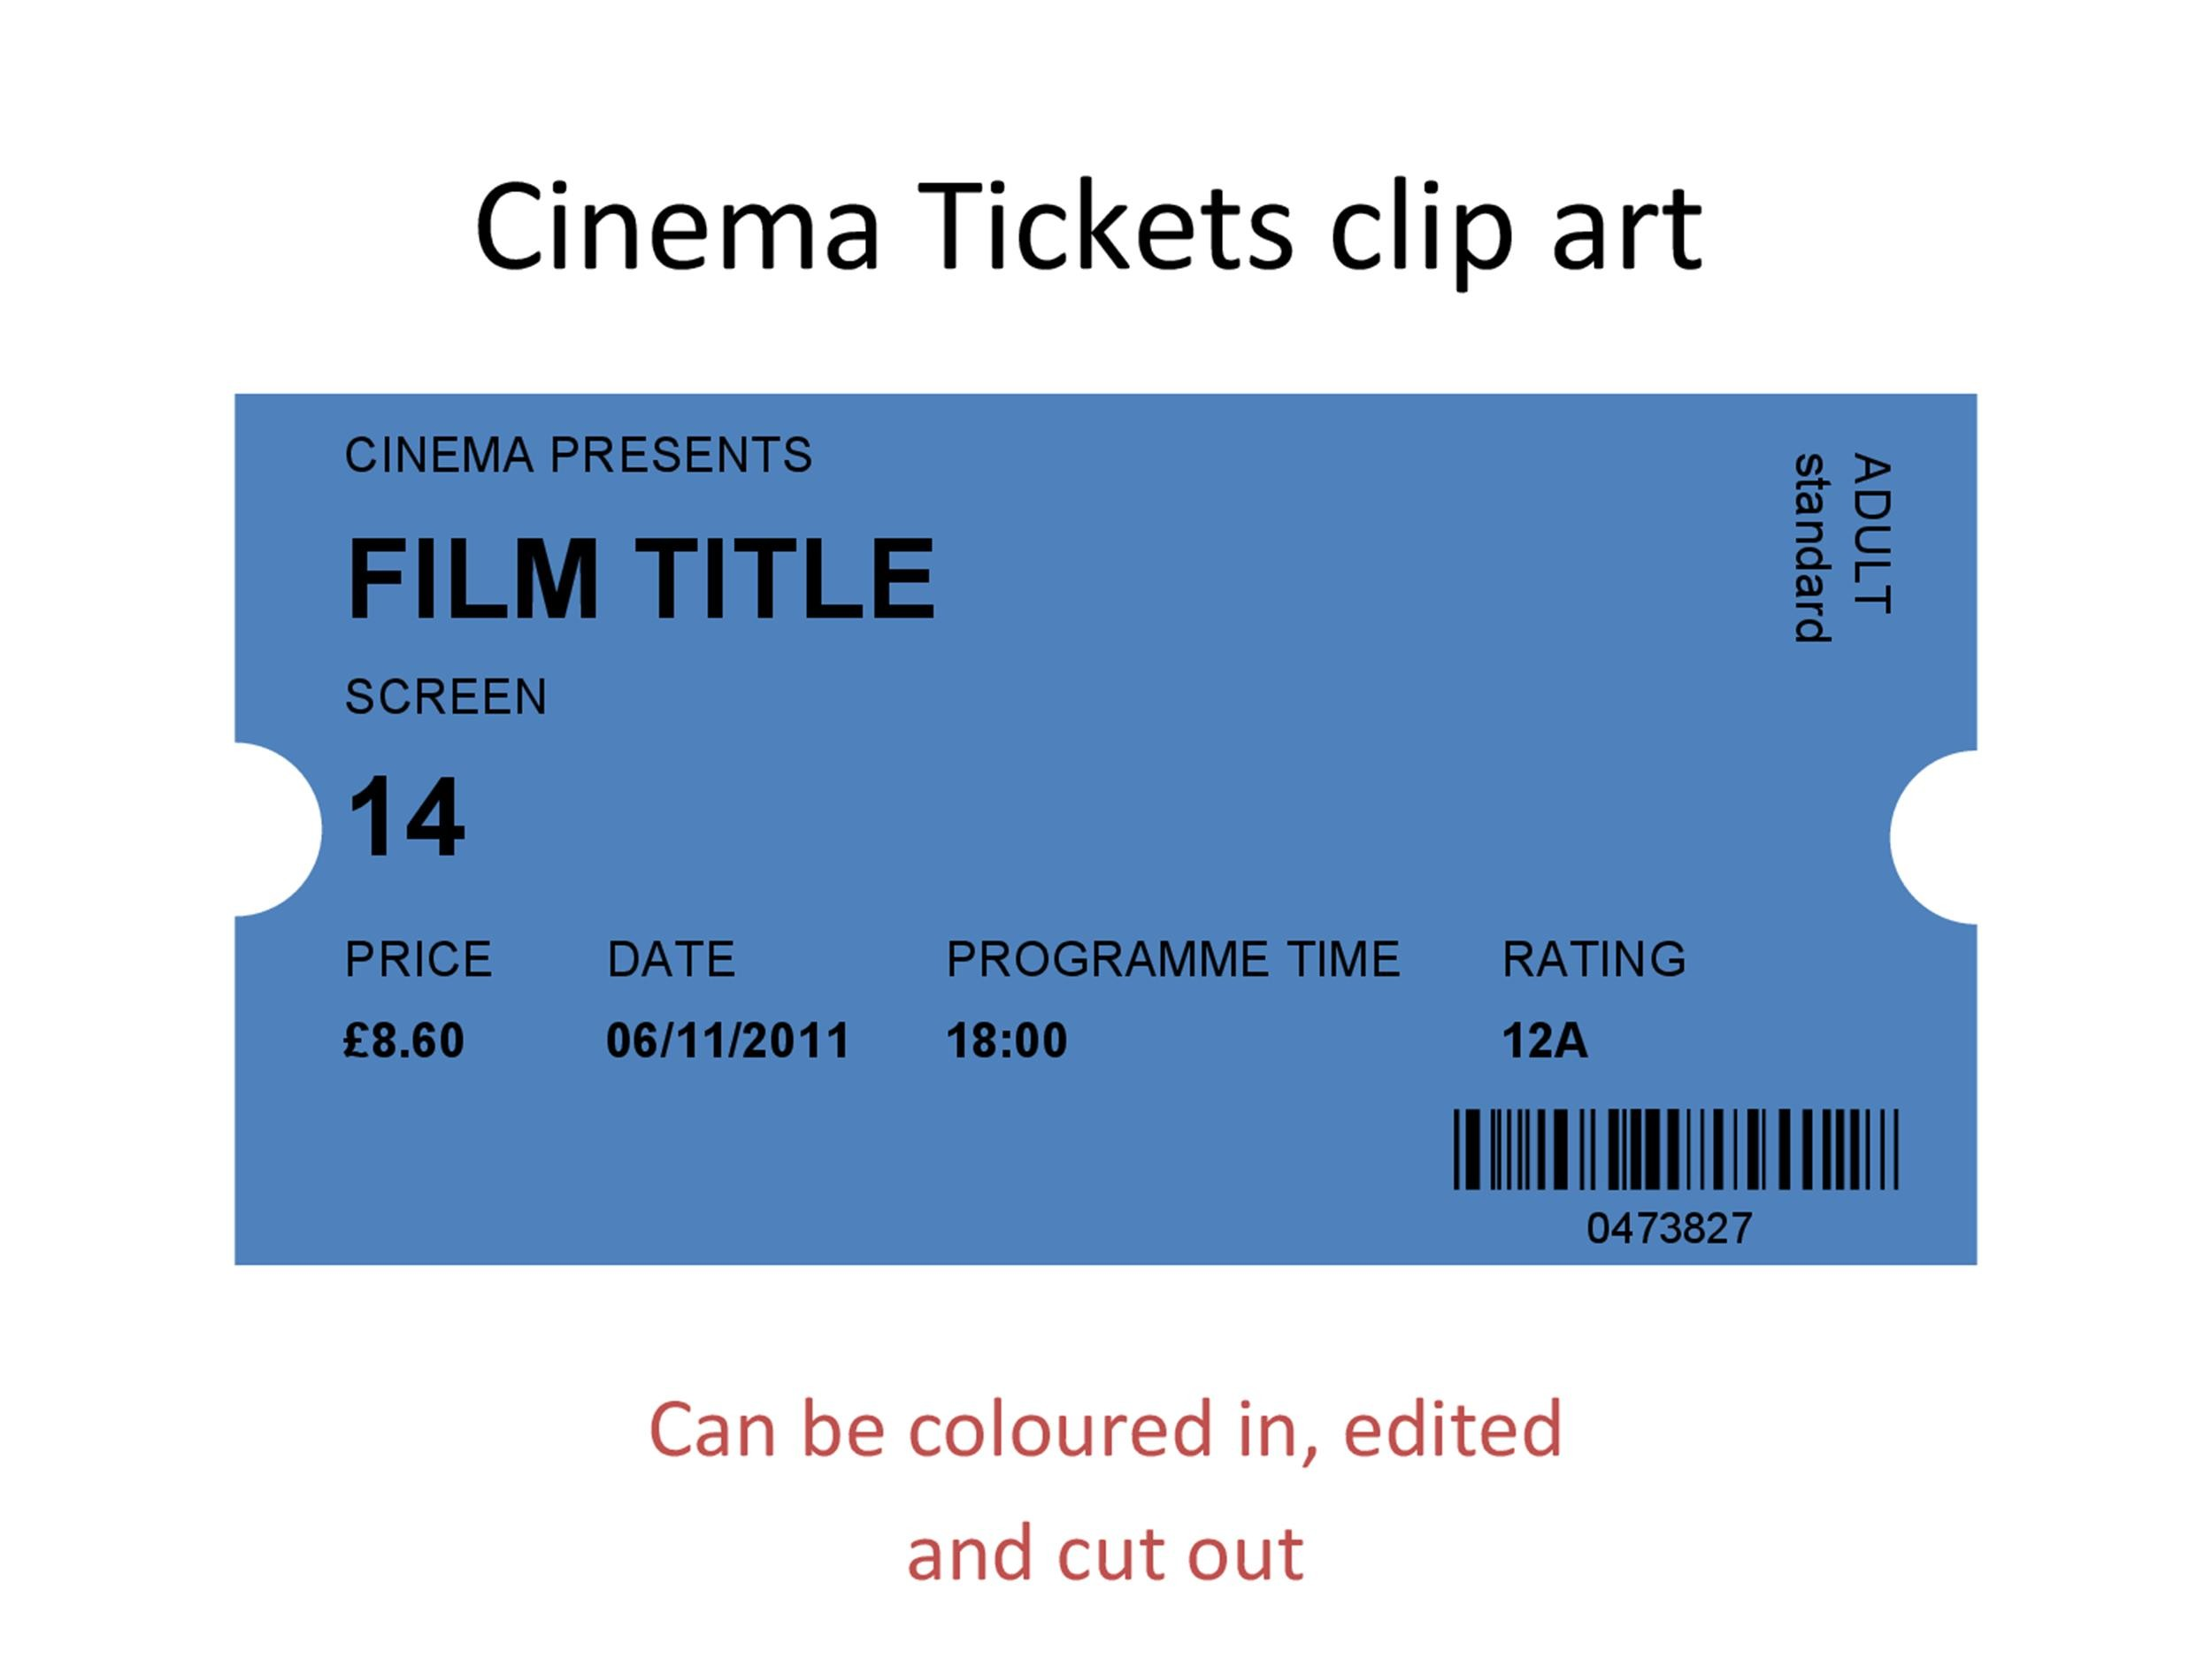 Printable Movie ticket Templates 42 Printable Movie ticket Templates 42 Printable Movie ticket Templates 42